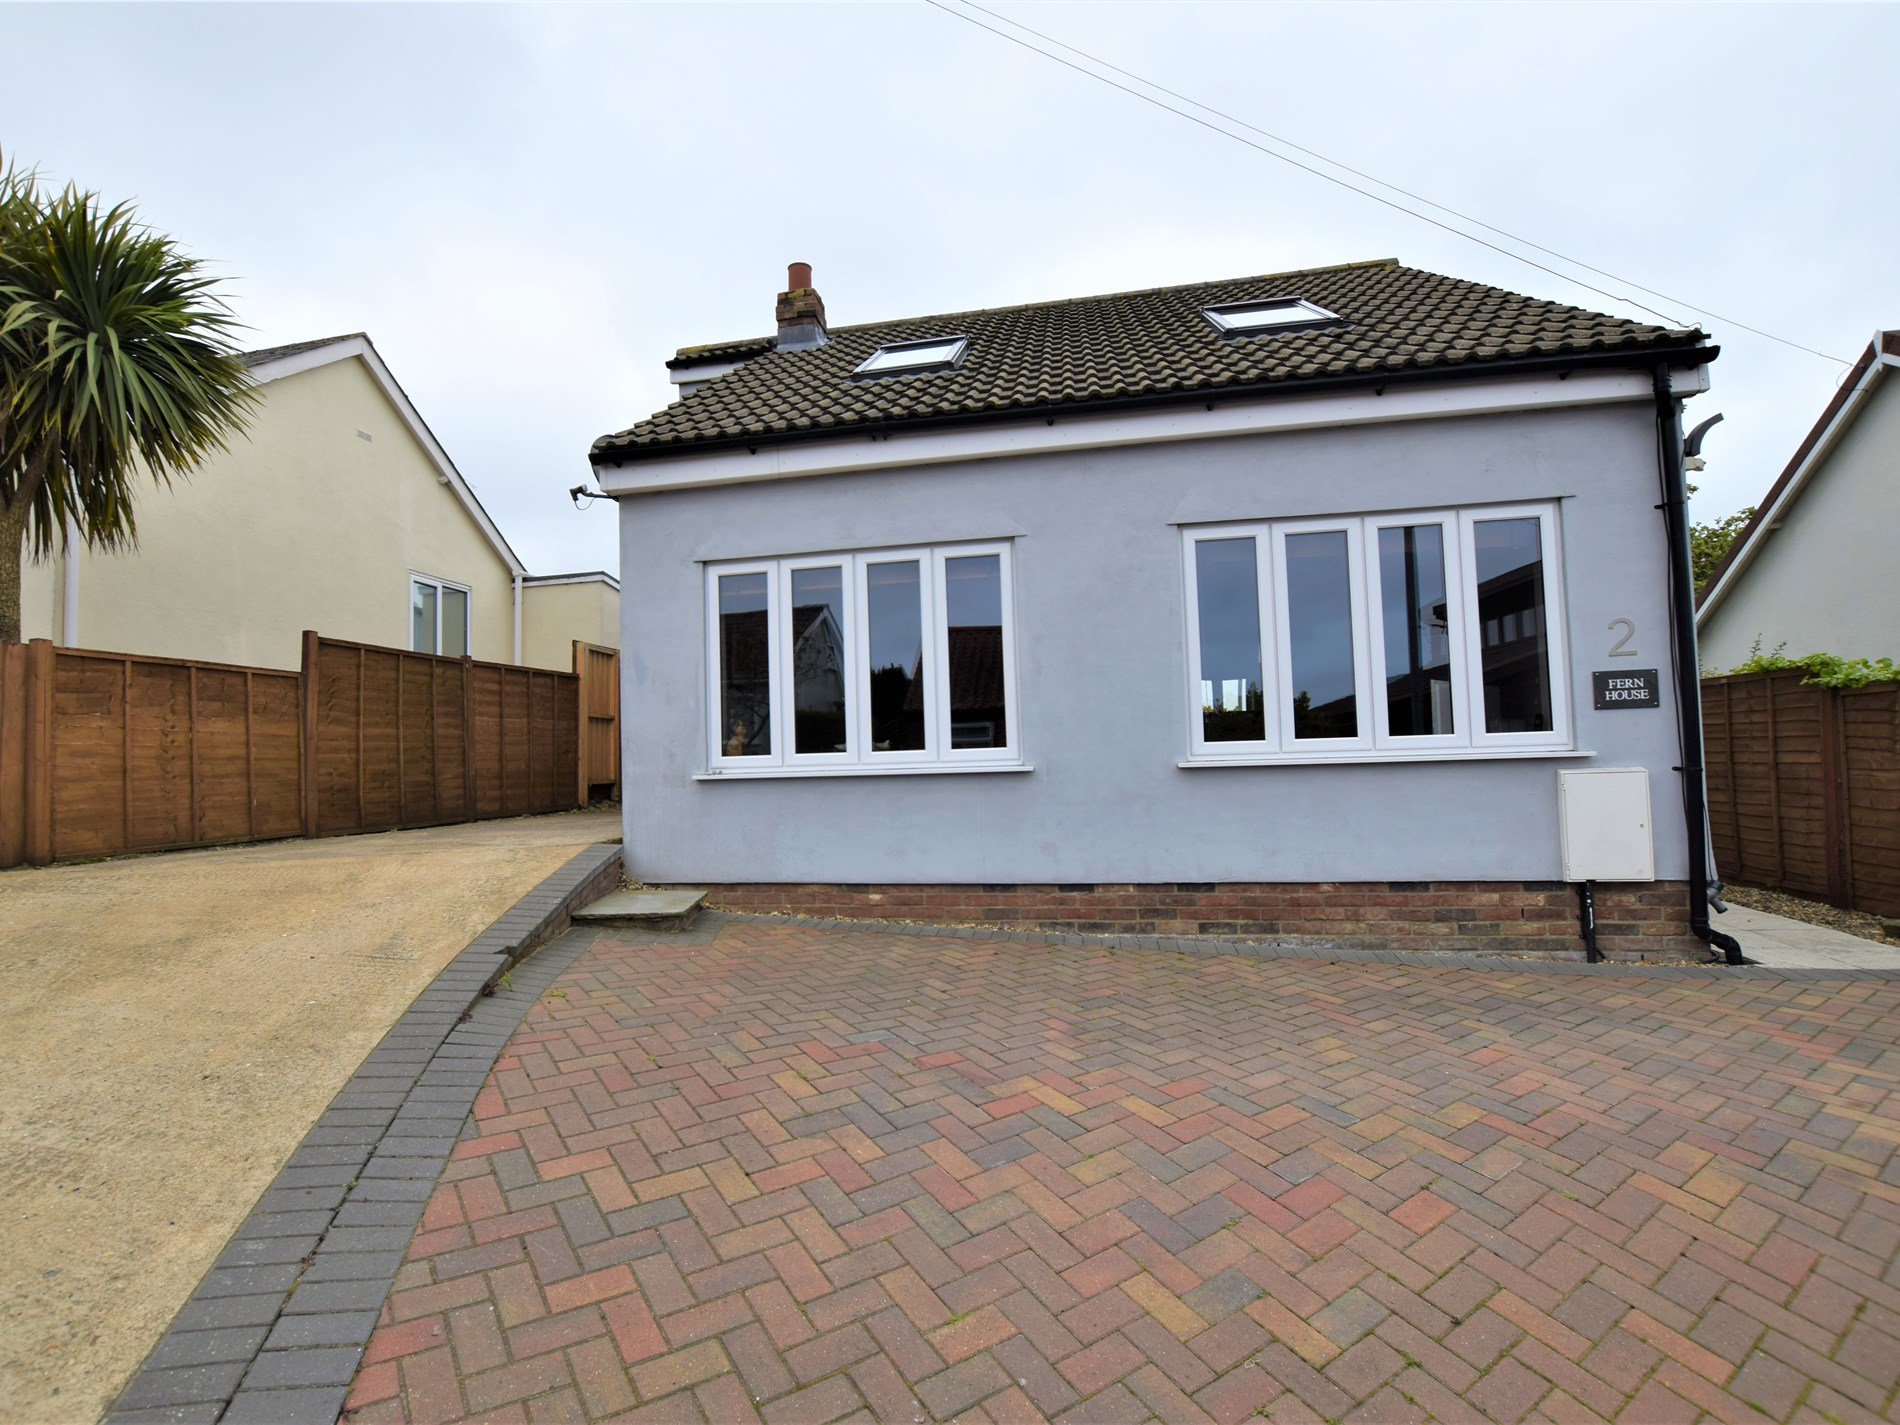 2 Bedroom Cottage in Cromer, East Anglia